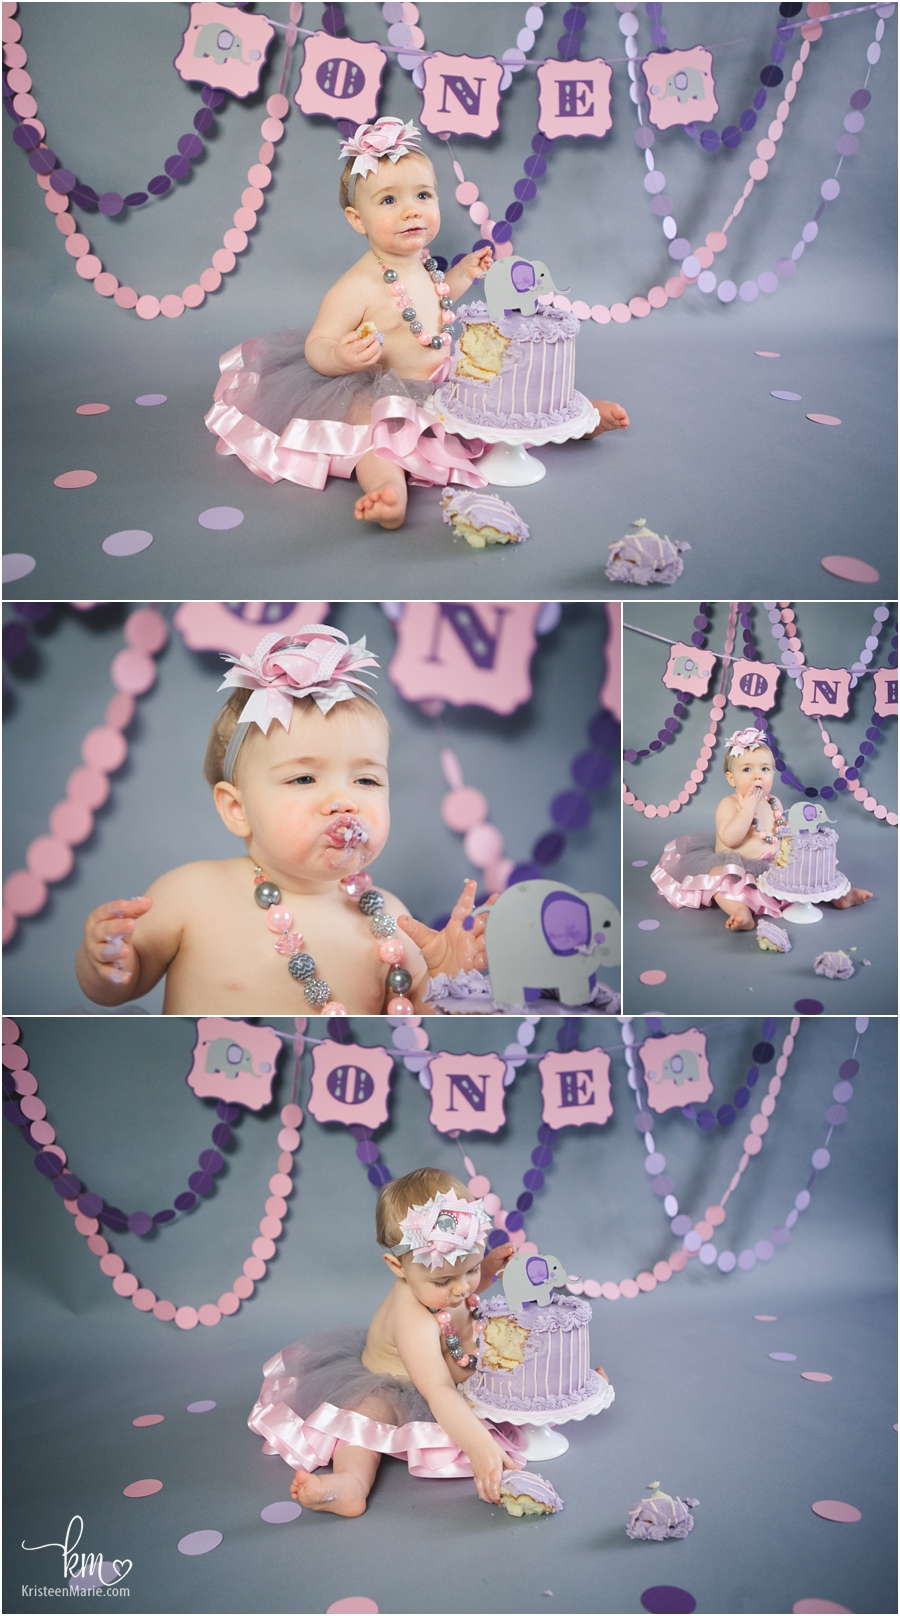 pink and purple elephant cake smash photography for baby's 1st birthday